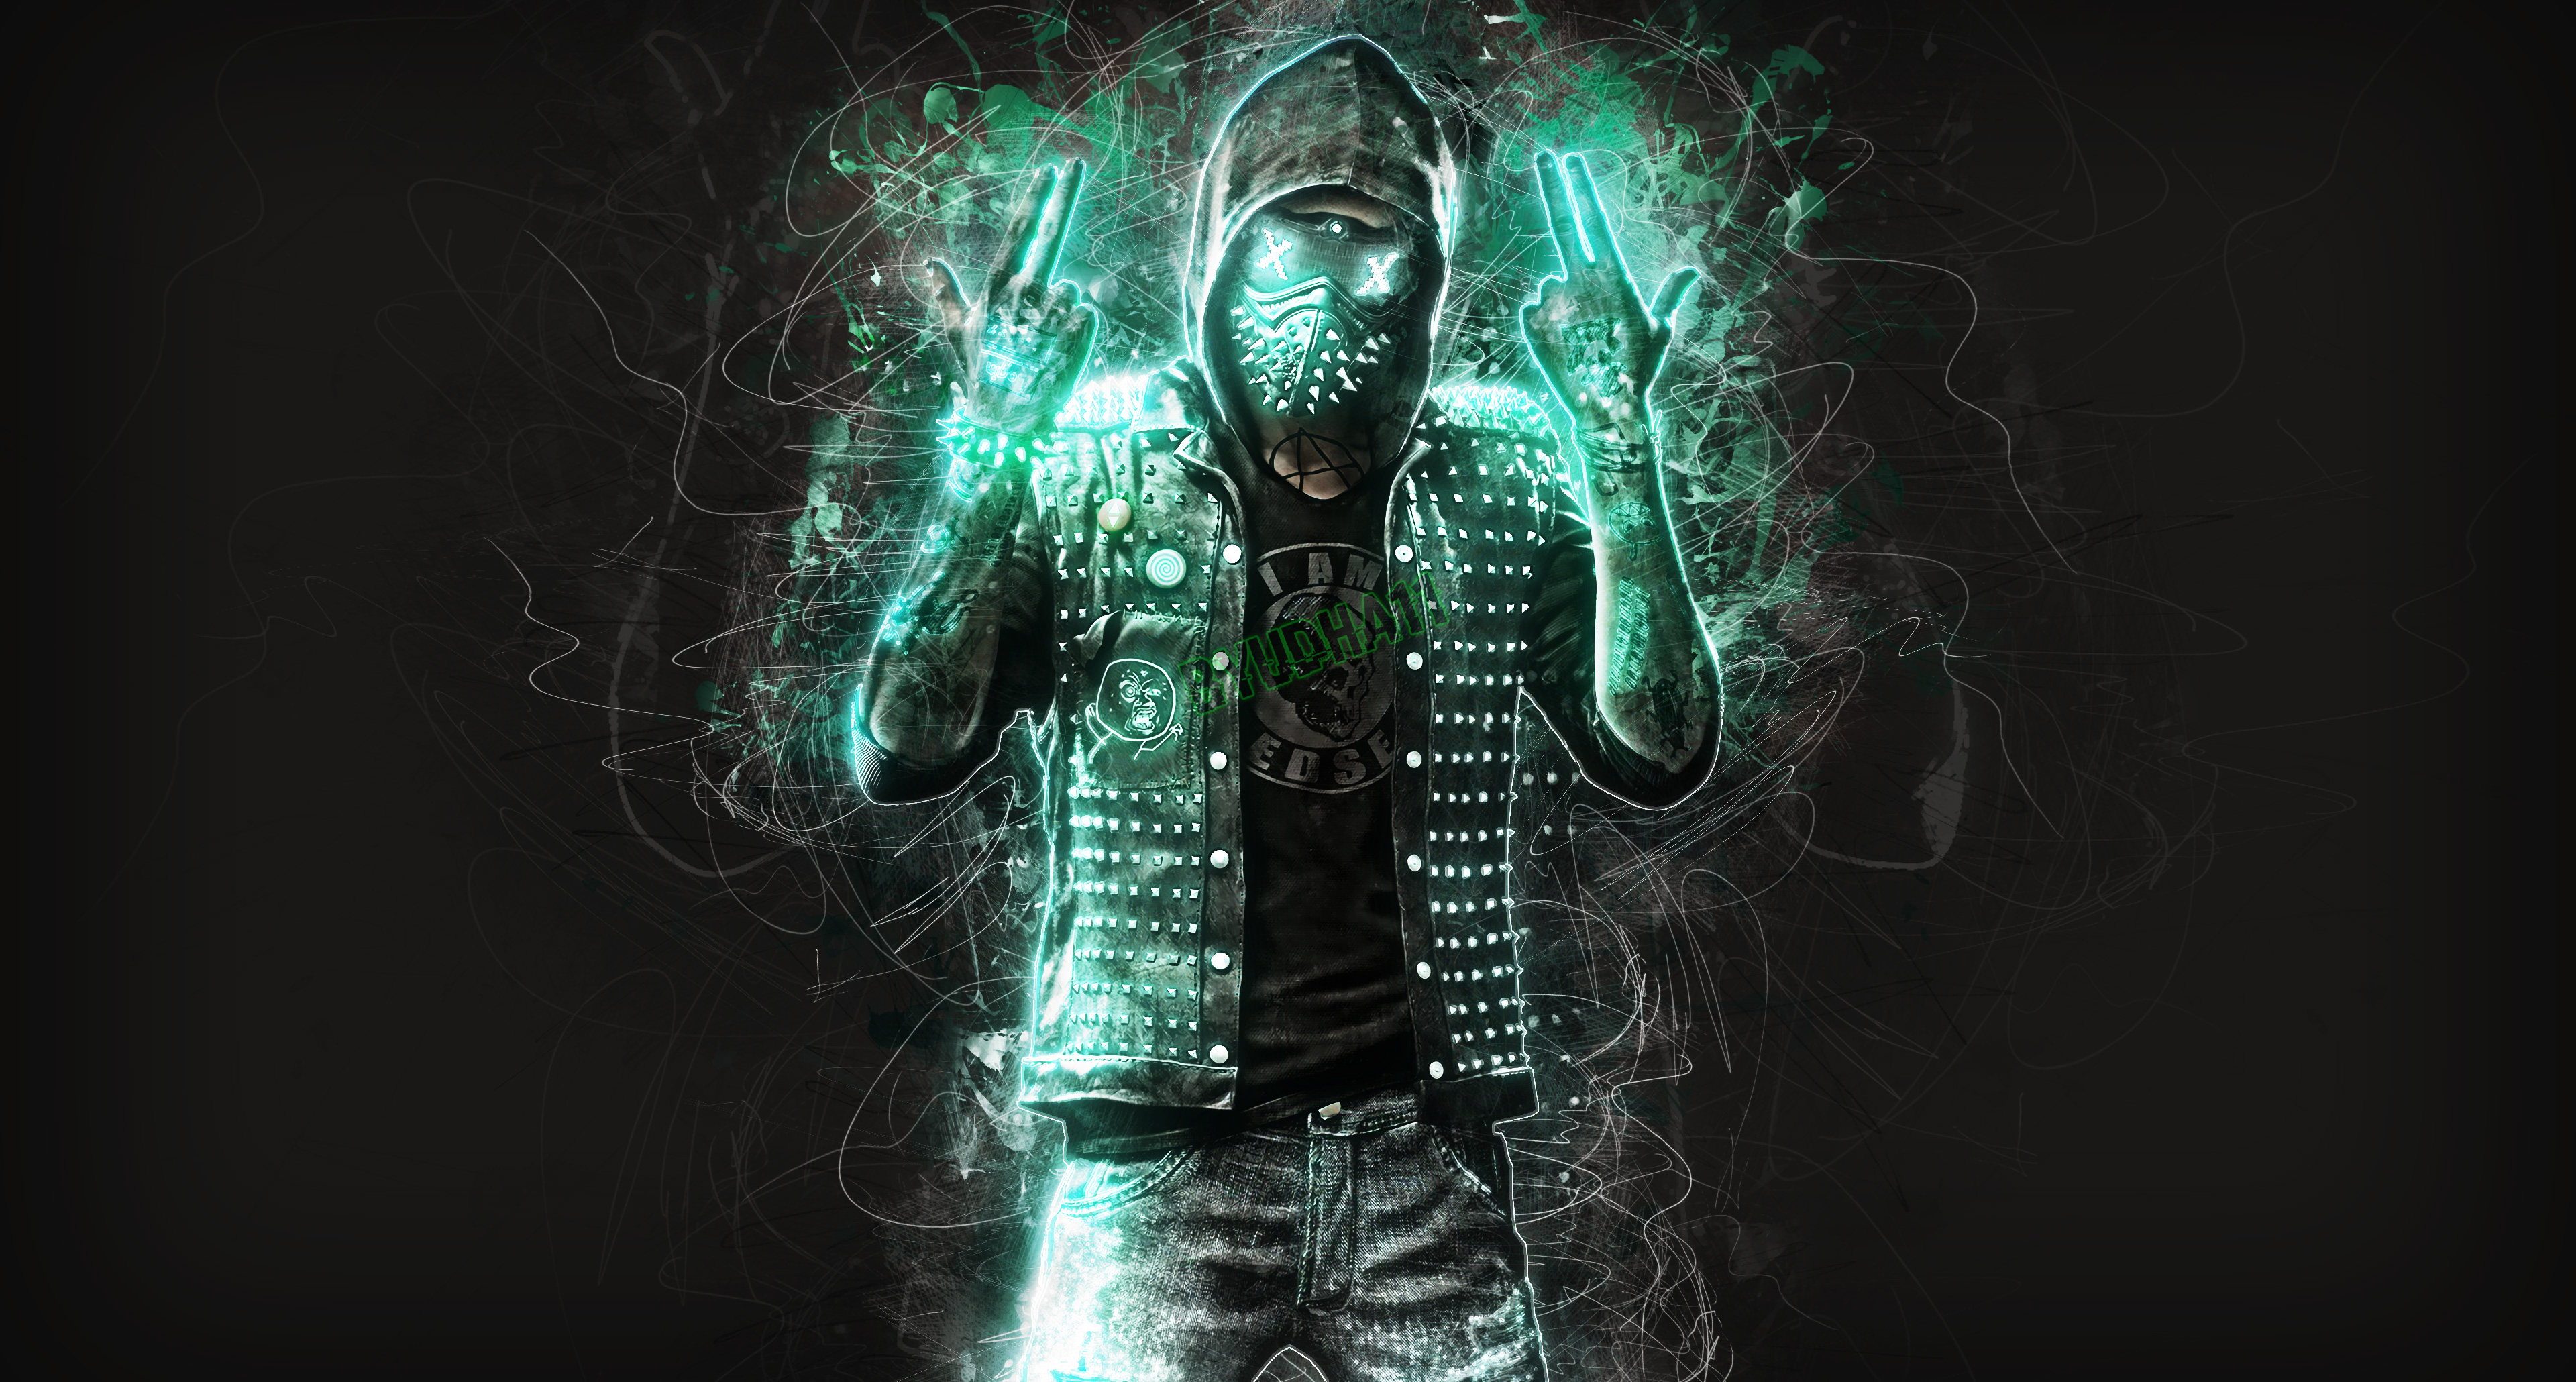 Watch Dogs 2 Wrench Fanart: Wrench Watch Dogs 2 Fan Art, HD Games, 4k Wallpapers